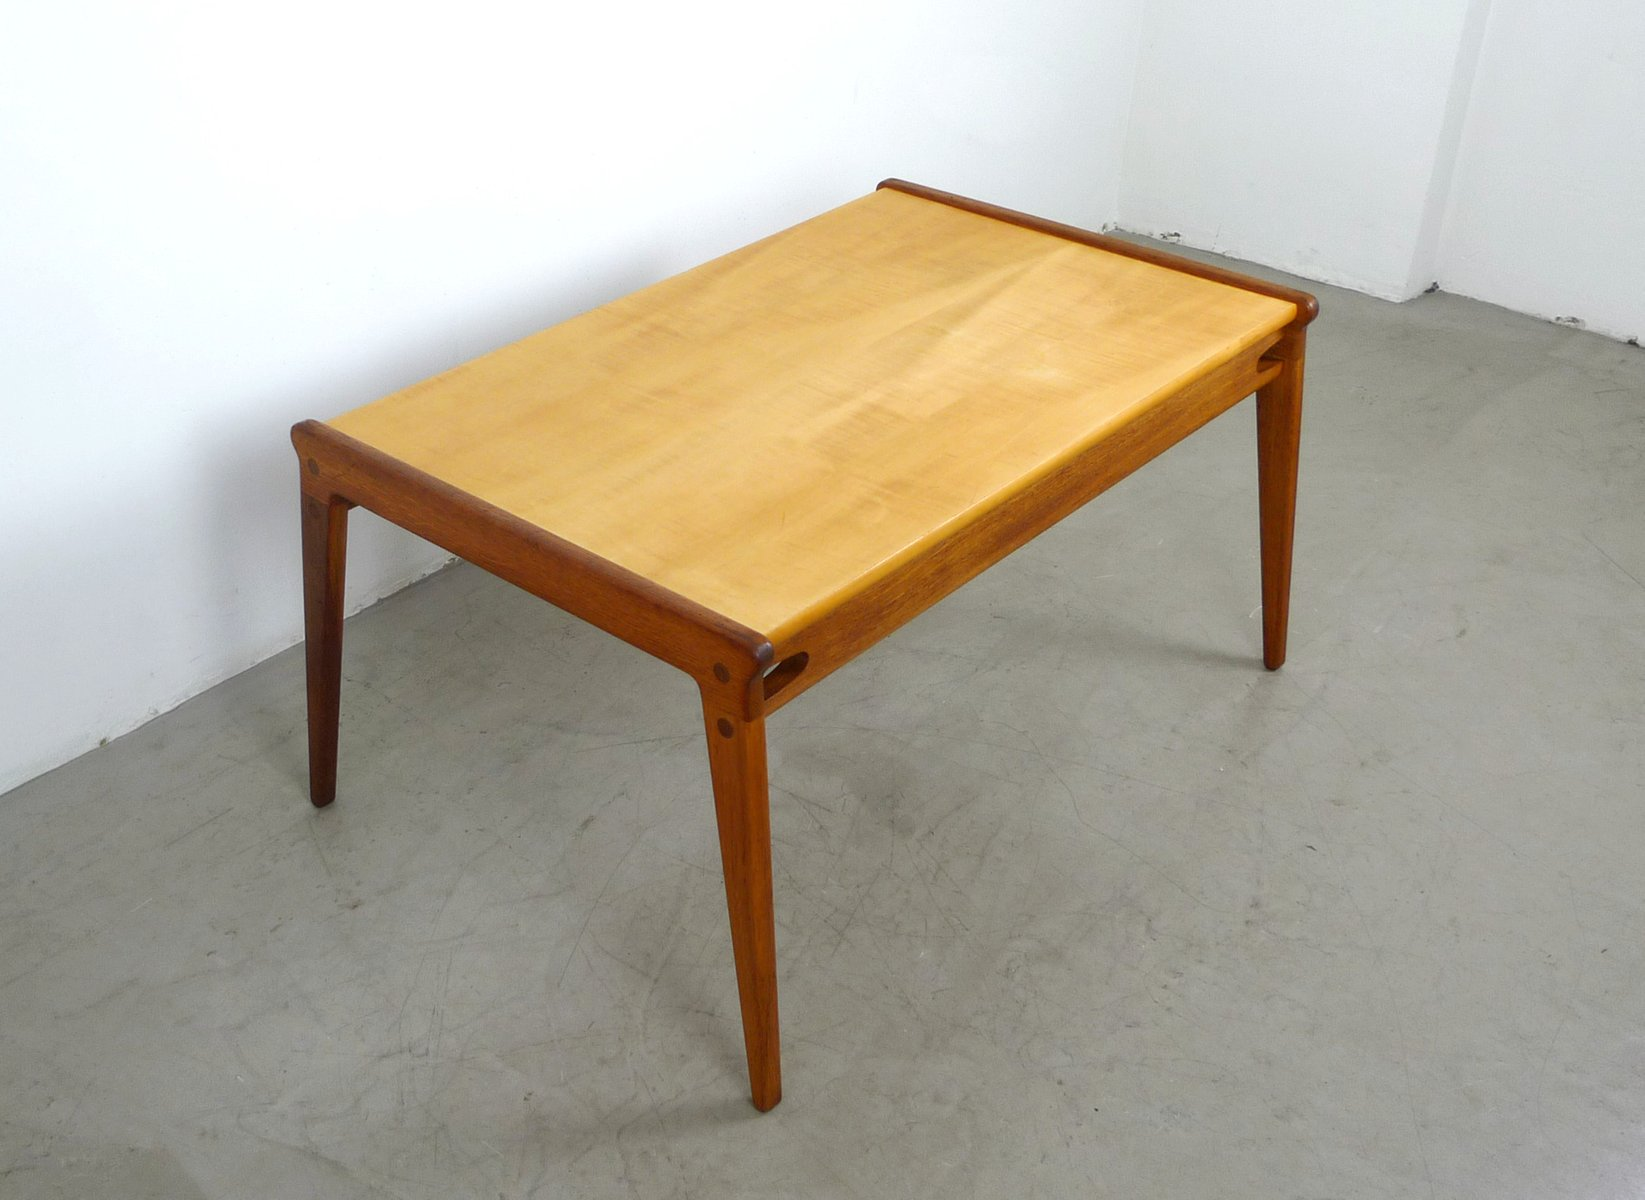 German Solid Oak & Maple Coffee Table 1950s for sale at Pamono